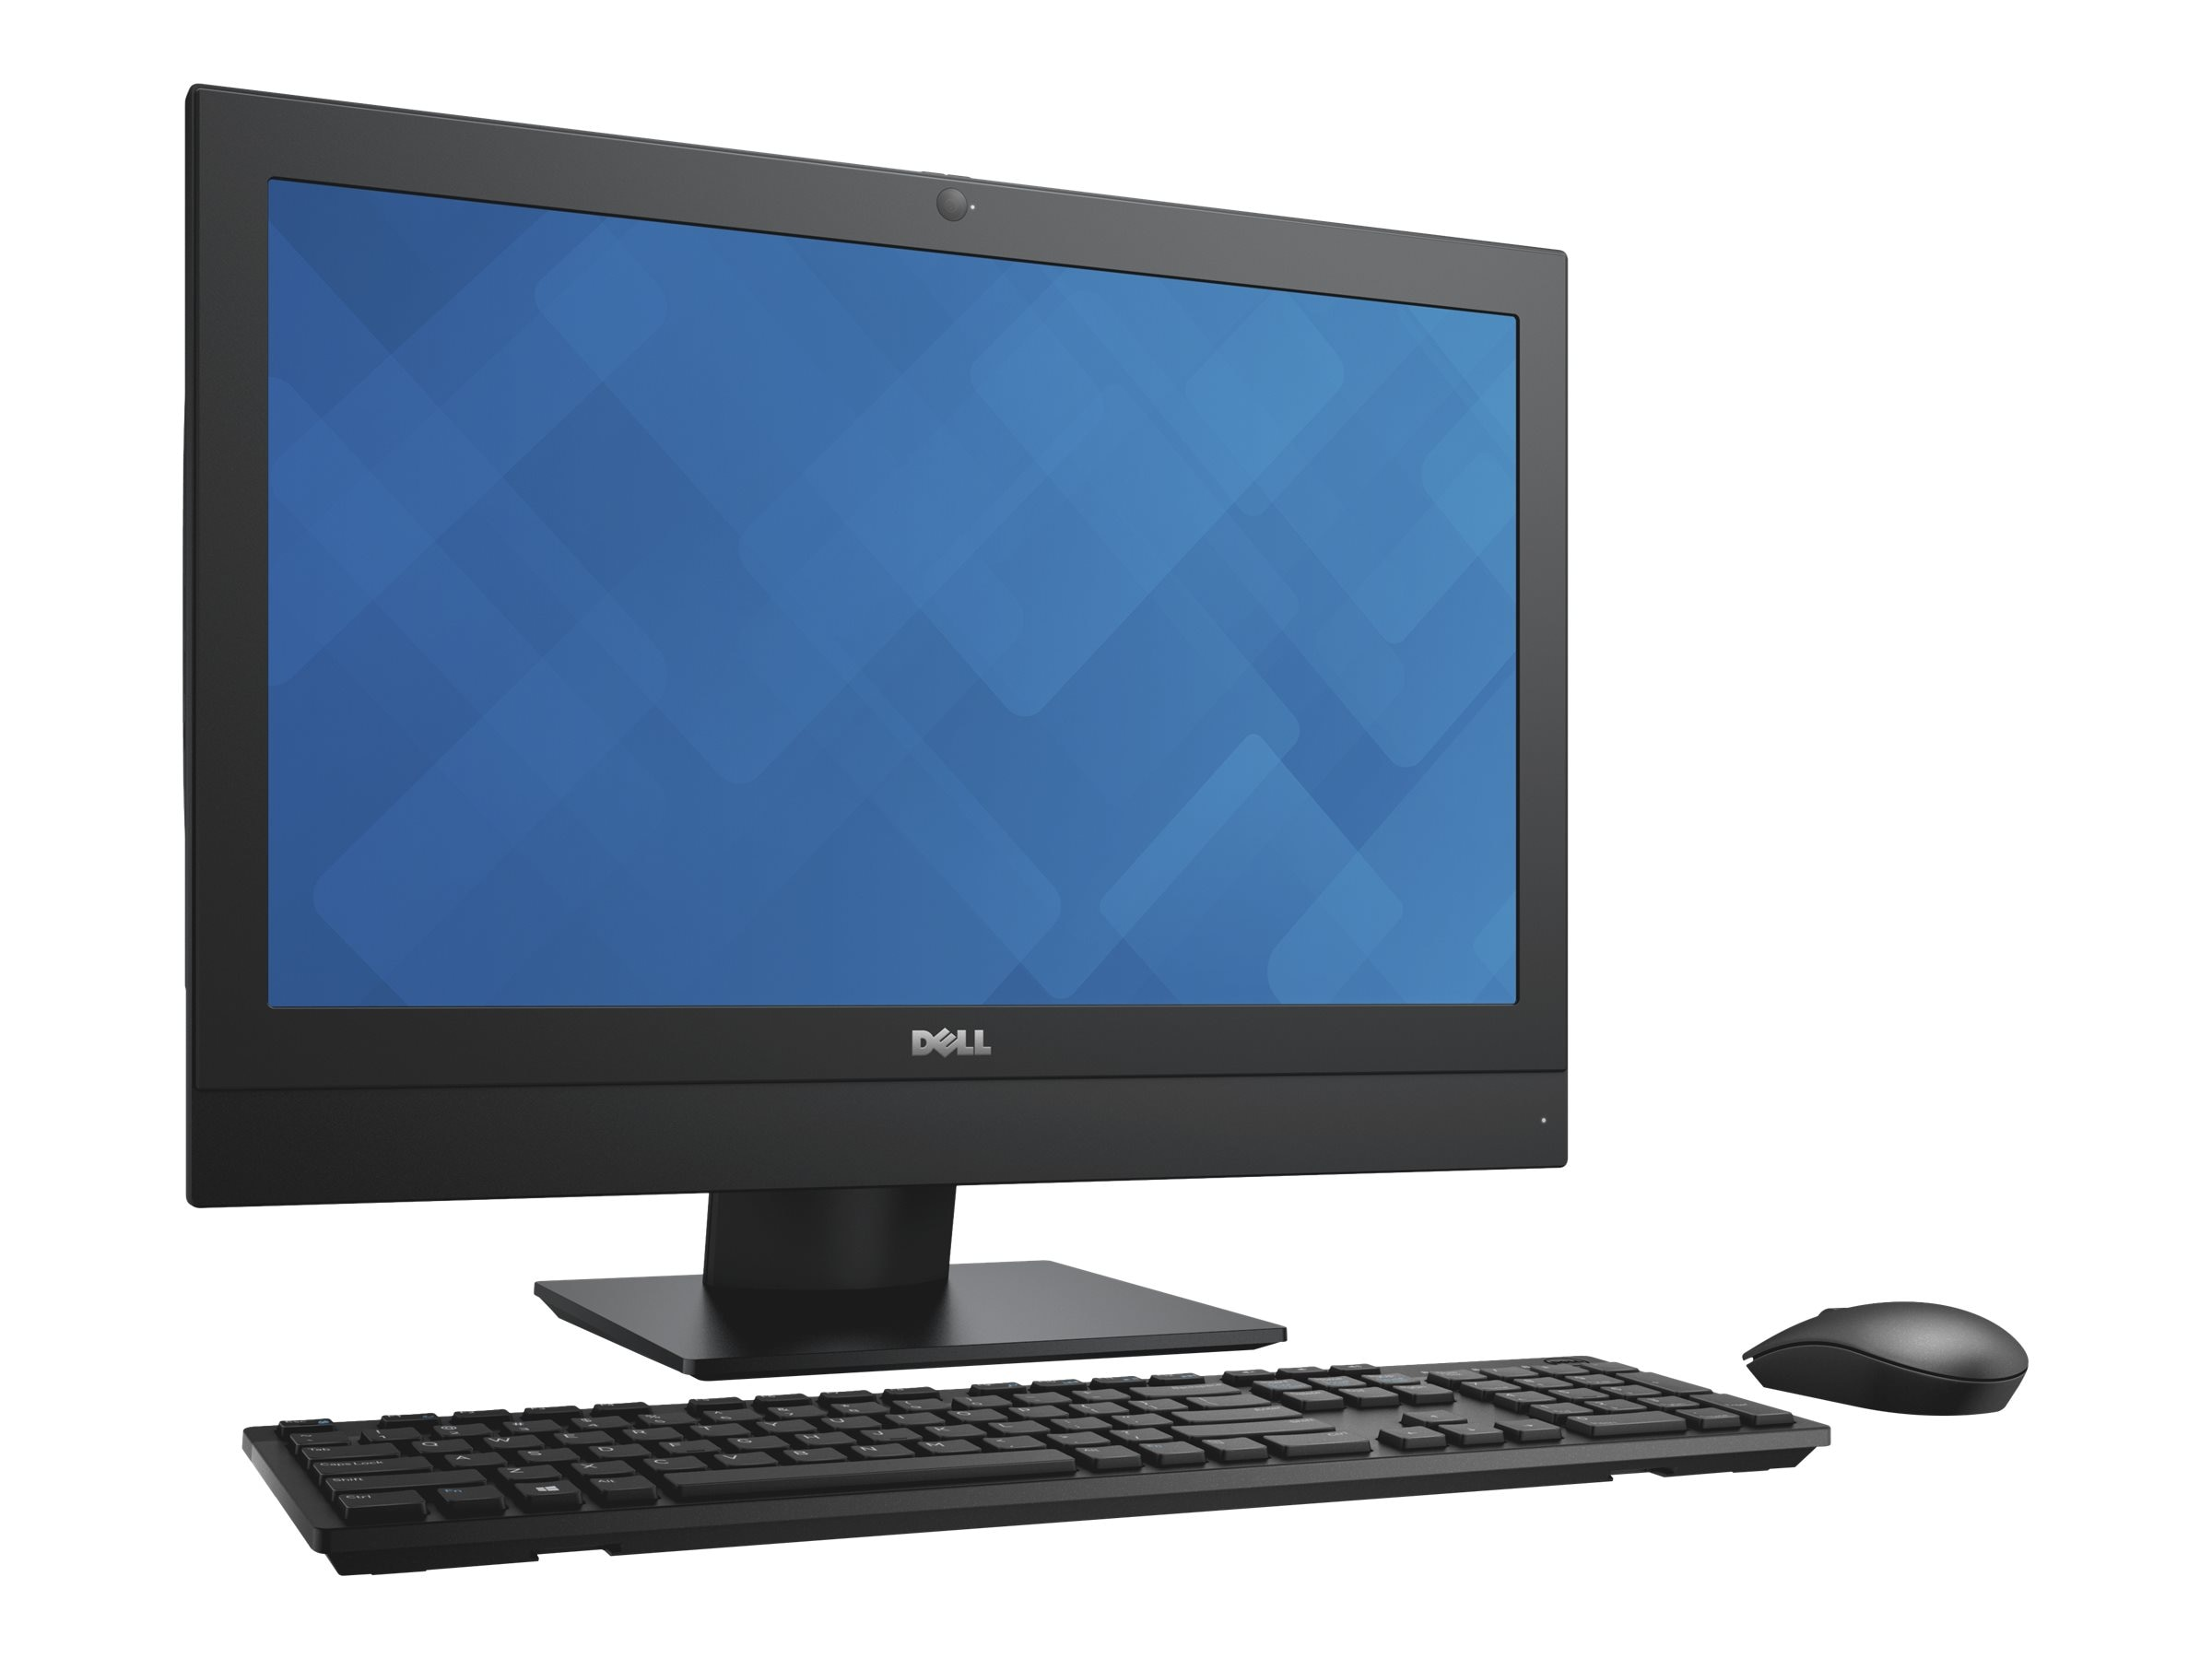 Dell 2HD1J Image 3